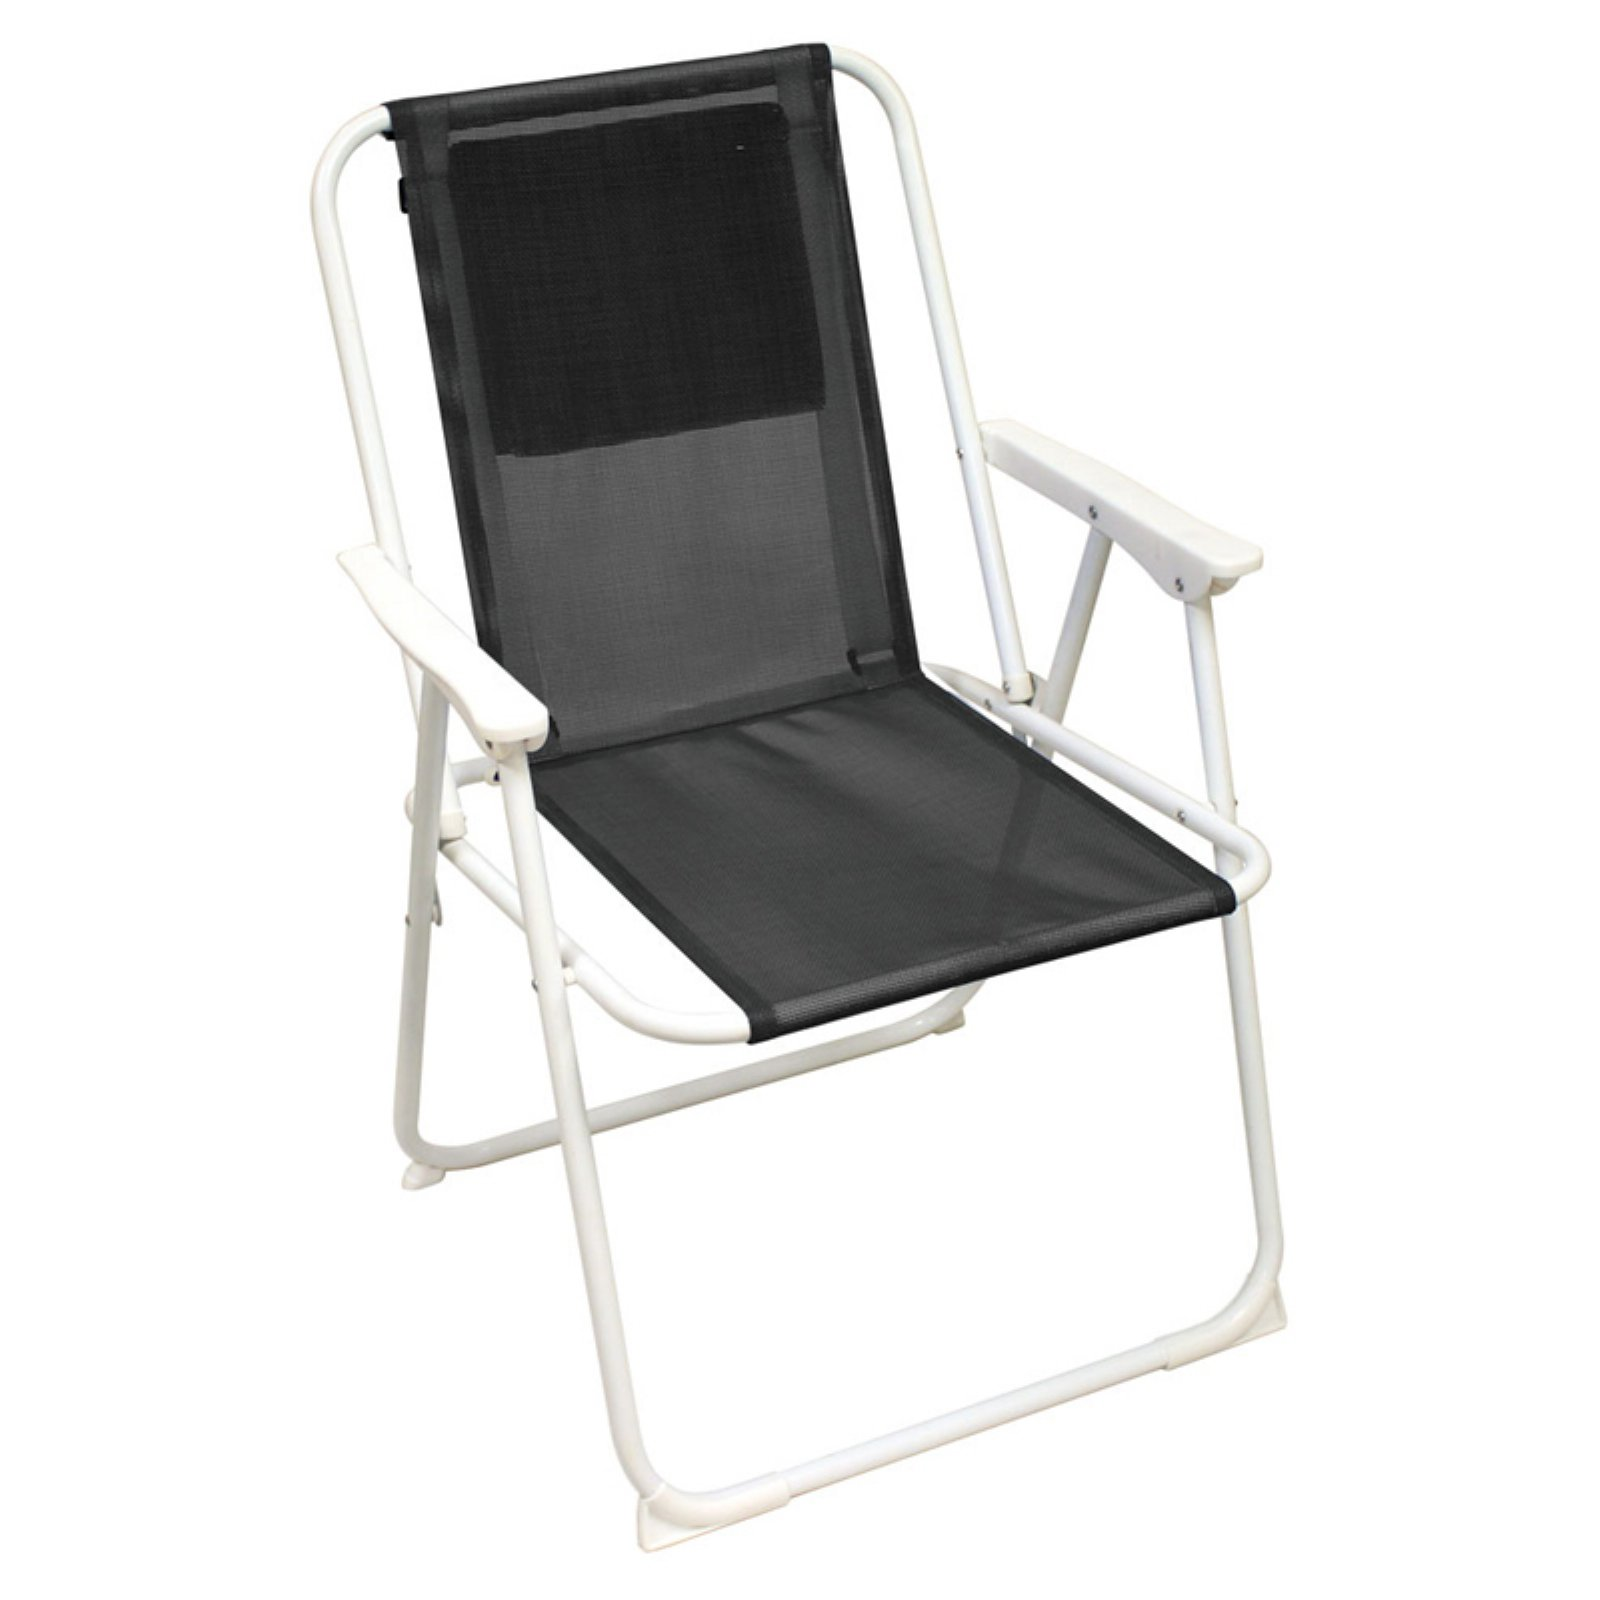 Portable Beach Chair Preferred Nation P7395 Portable Beach Chair 9 5